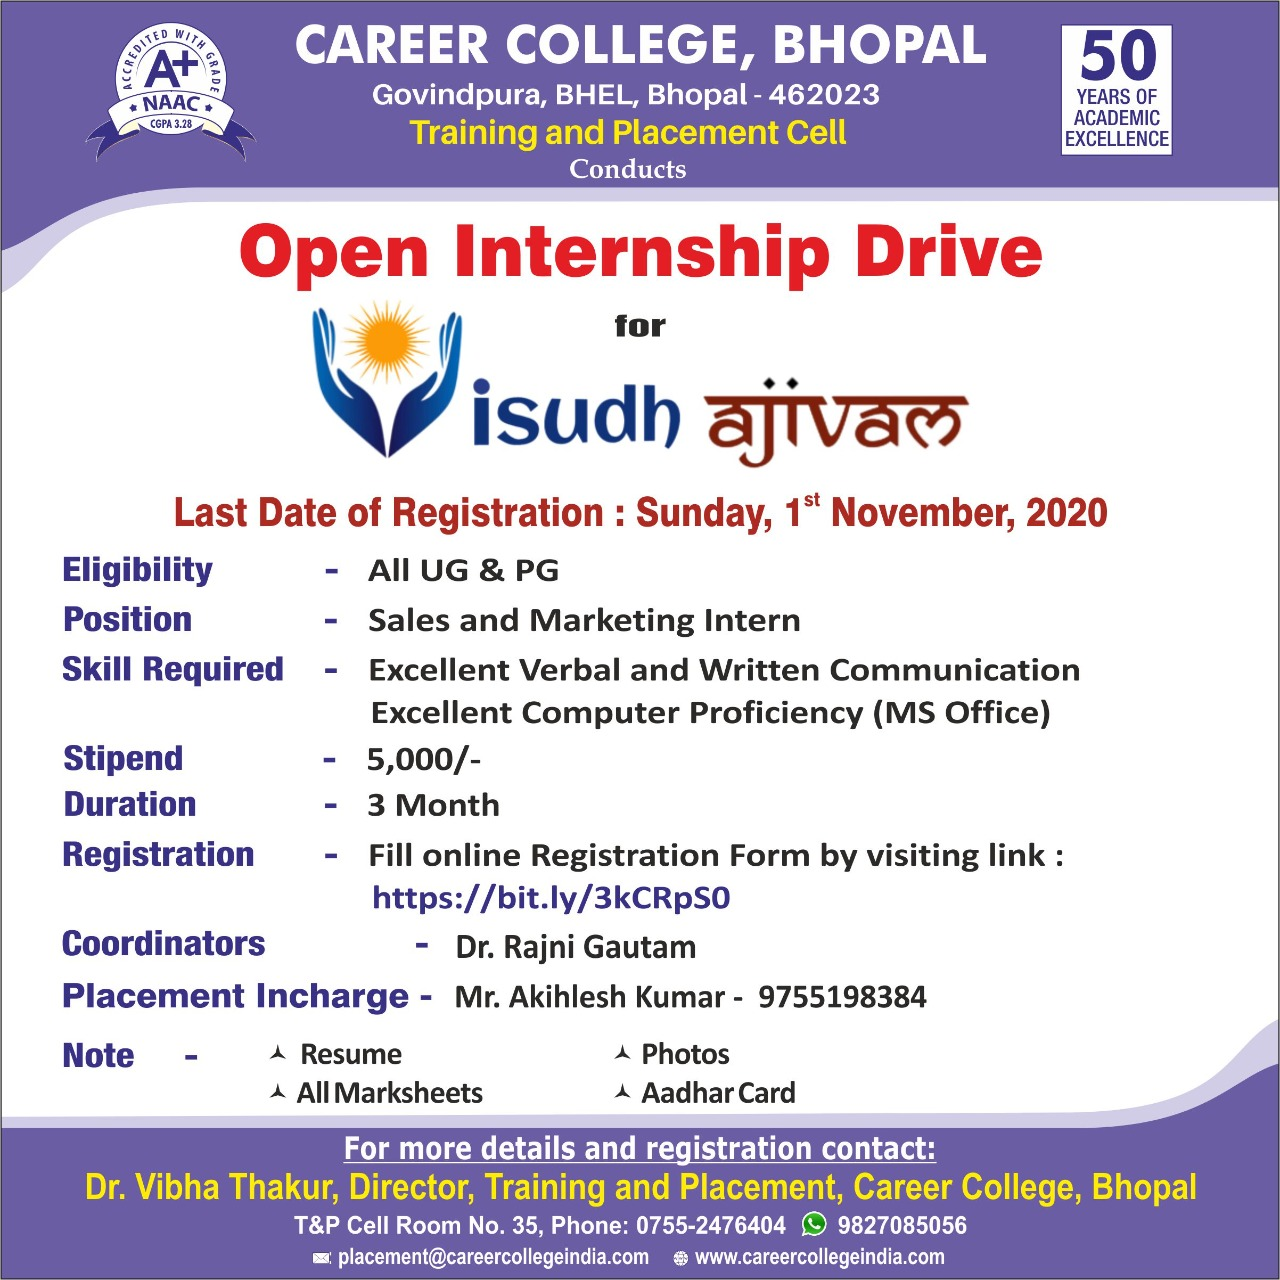 Career College Bhopal